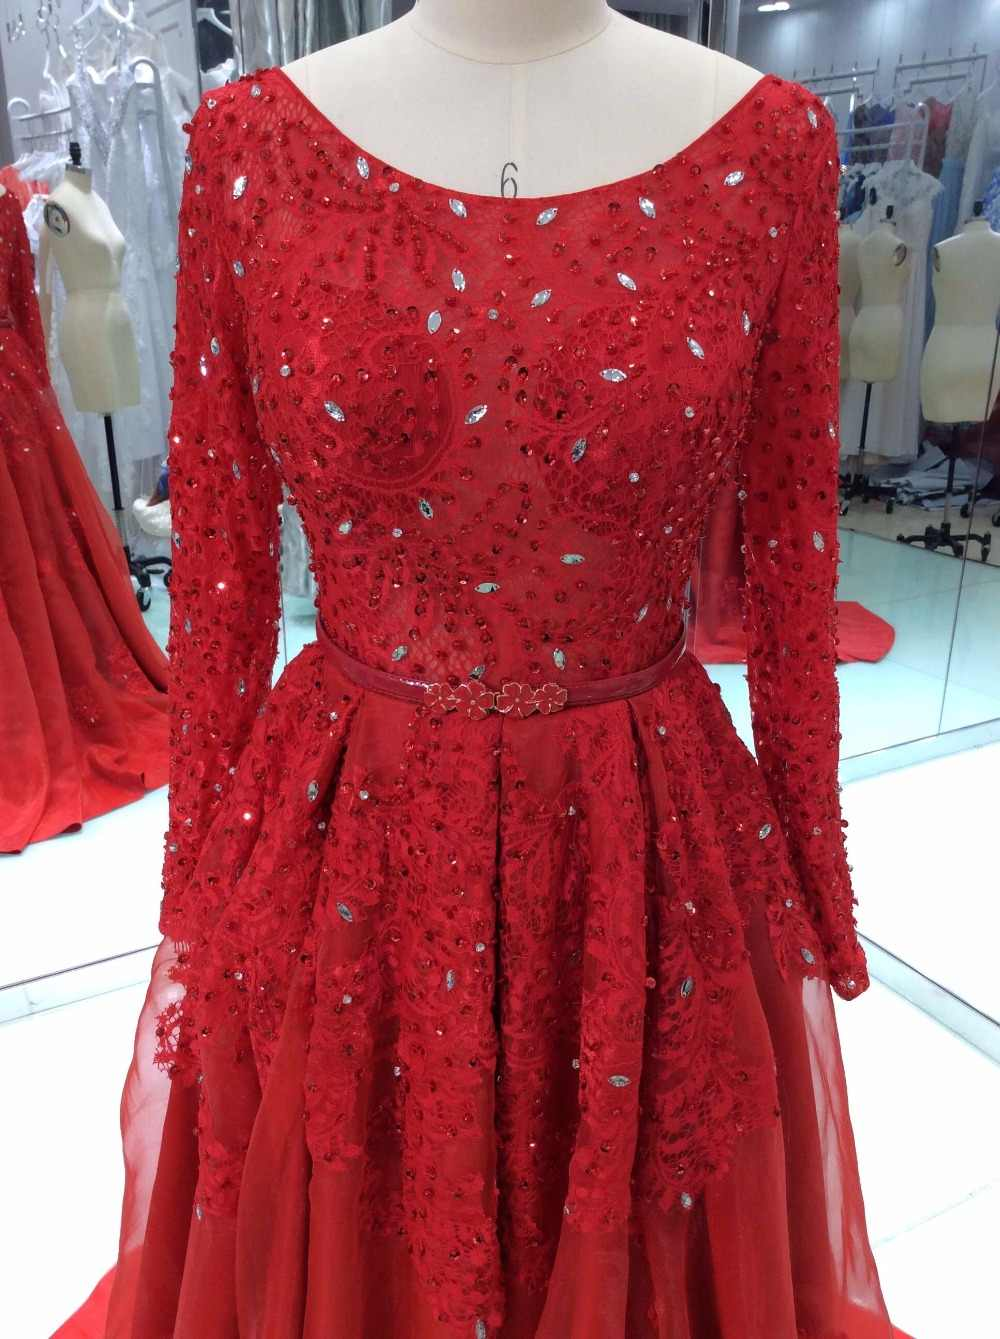 ... Elegant Red Prom Dresses 2018 Ball Gown Long Sleeves Lace Beaded Satin  Long Evening Gown Party 5dd6a50101ec